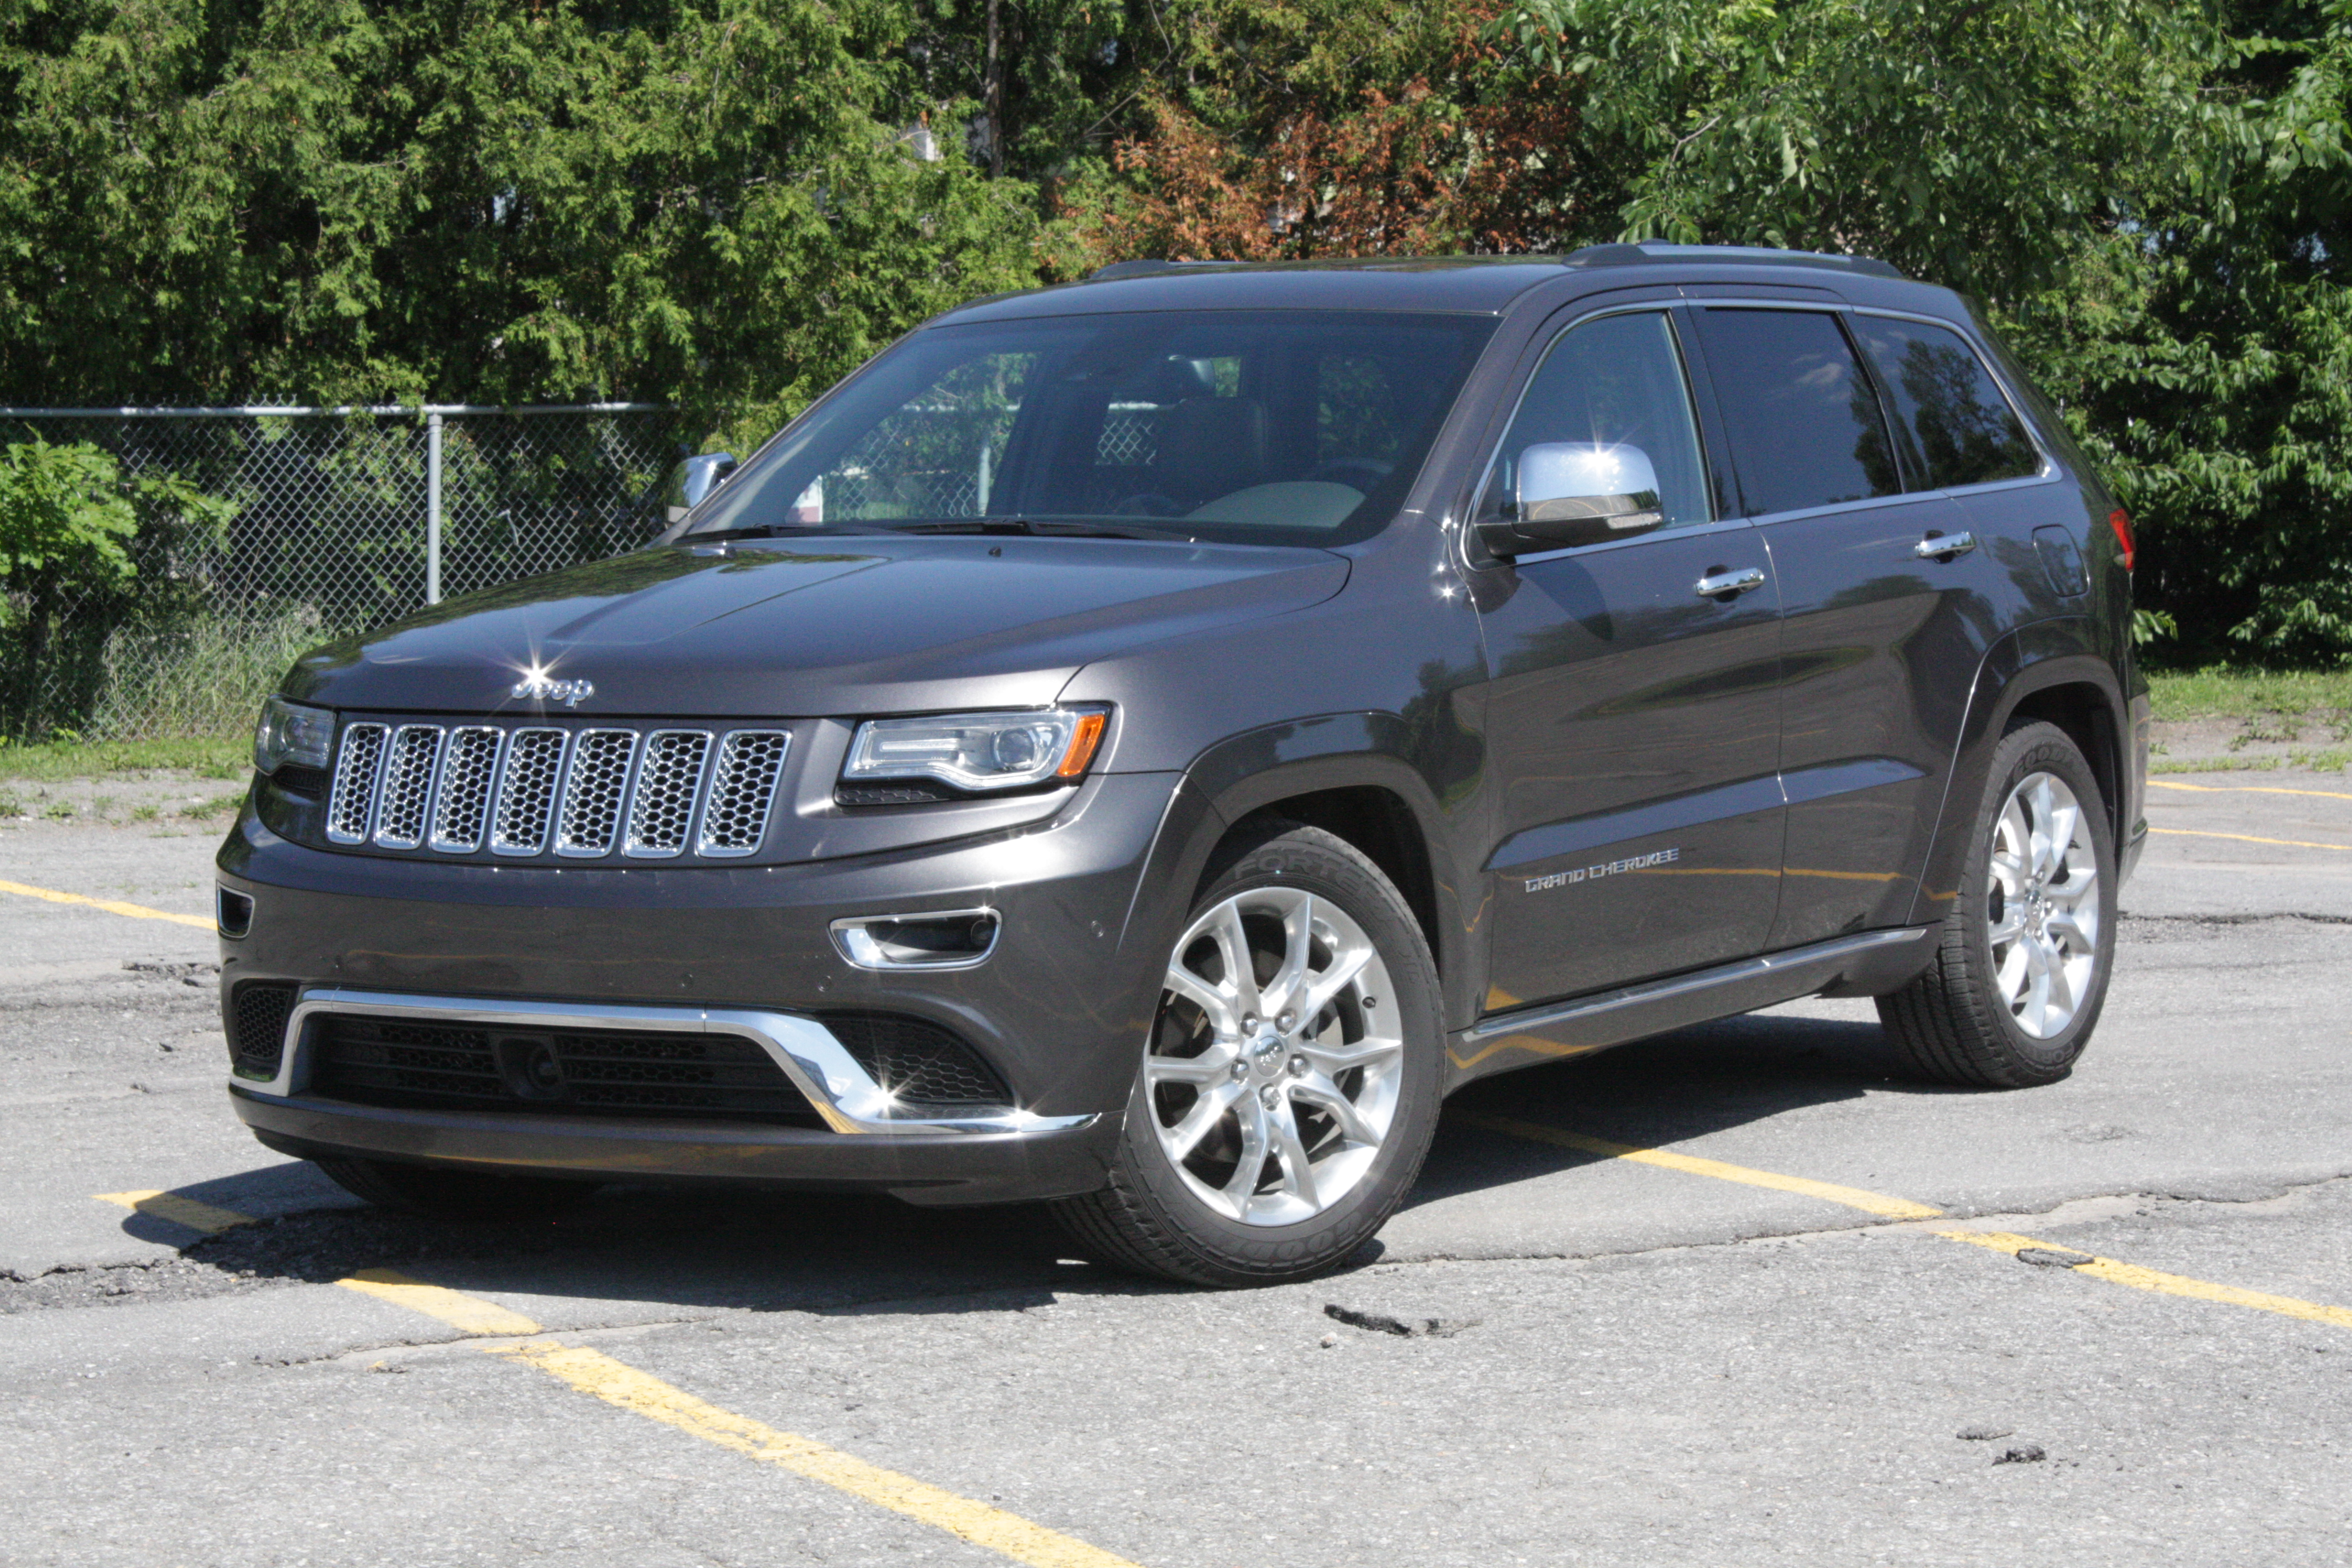 Disable Seat Belt Chime For 2015 Grand Cherokee.html | Autos Post